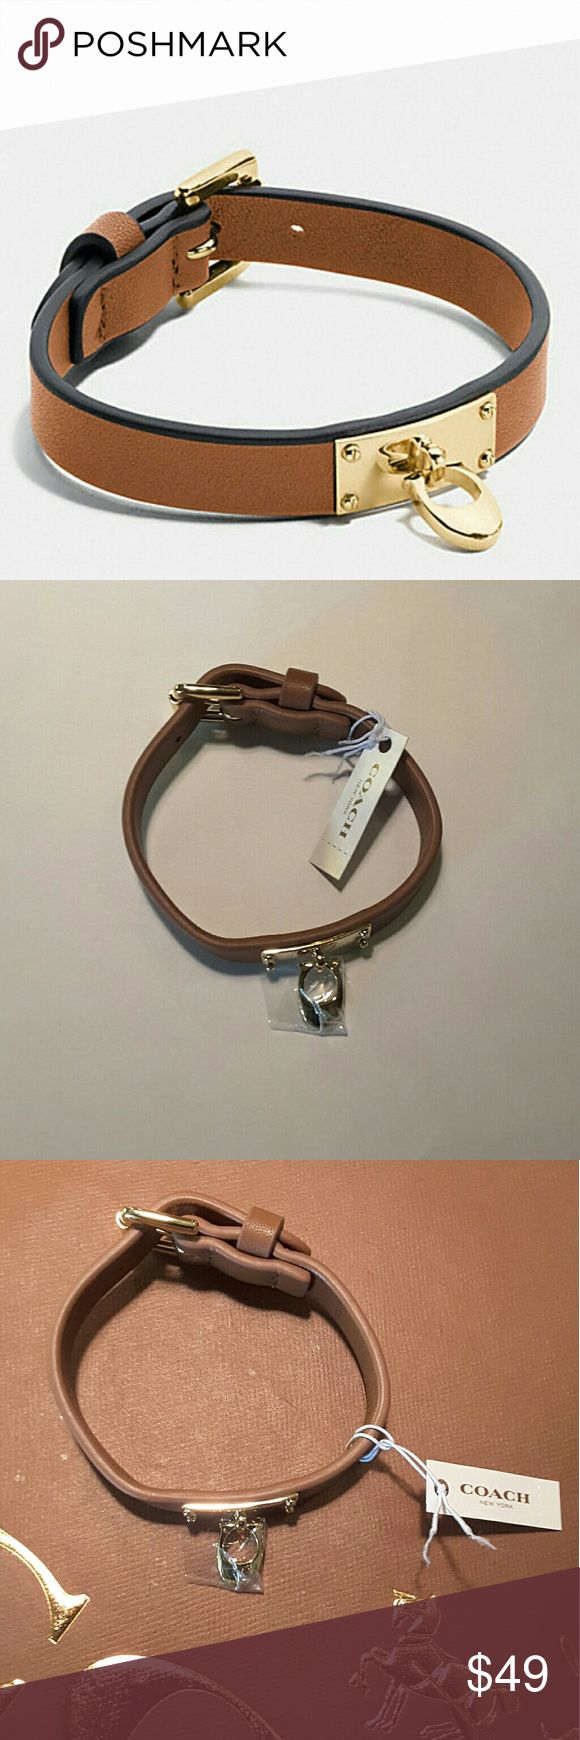 "Coach Signature C Leather Buckle Bracelet NWT Beautiful Coach Saddle Color Leather Buckle Bracelet With Gleaming Gold-Tone Letter C Charm NWT, Never Worn, Sleek Understated Bracelet With Coach Logo Engraved On Inside, Adjustable Band, Apx .5"" Width, Please See 4th Picture For Apx Length Of Band, Light Gold-Tone Hardware, Comes With Coach Jewelry Care Booklet Coach Jewelry Bracelets"